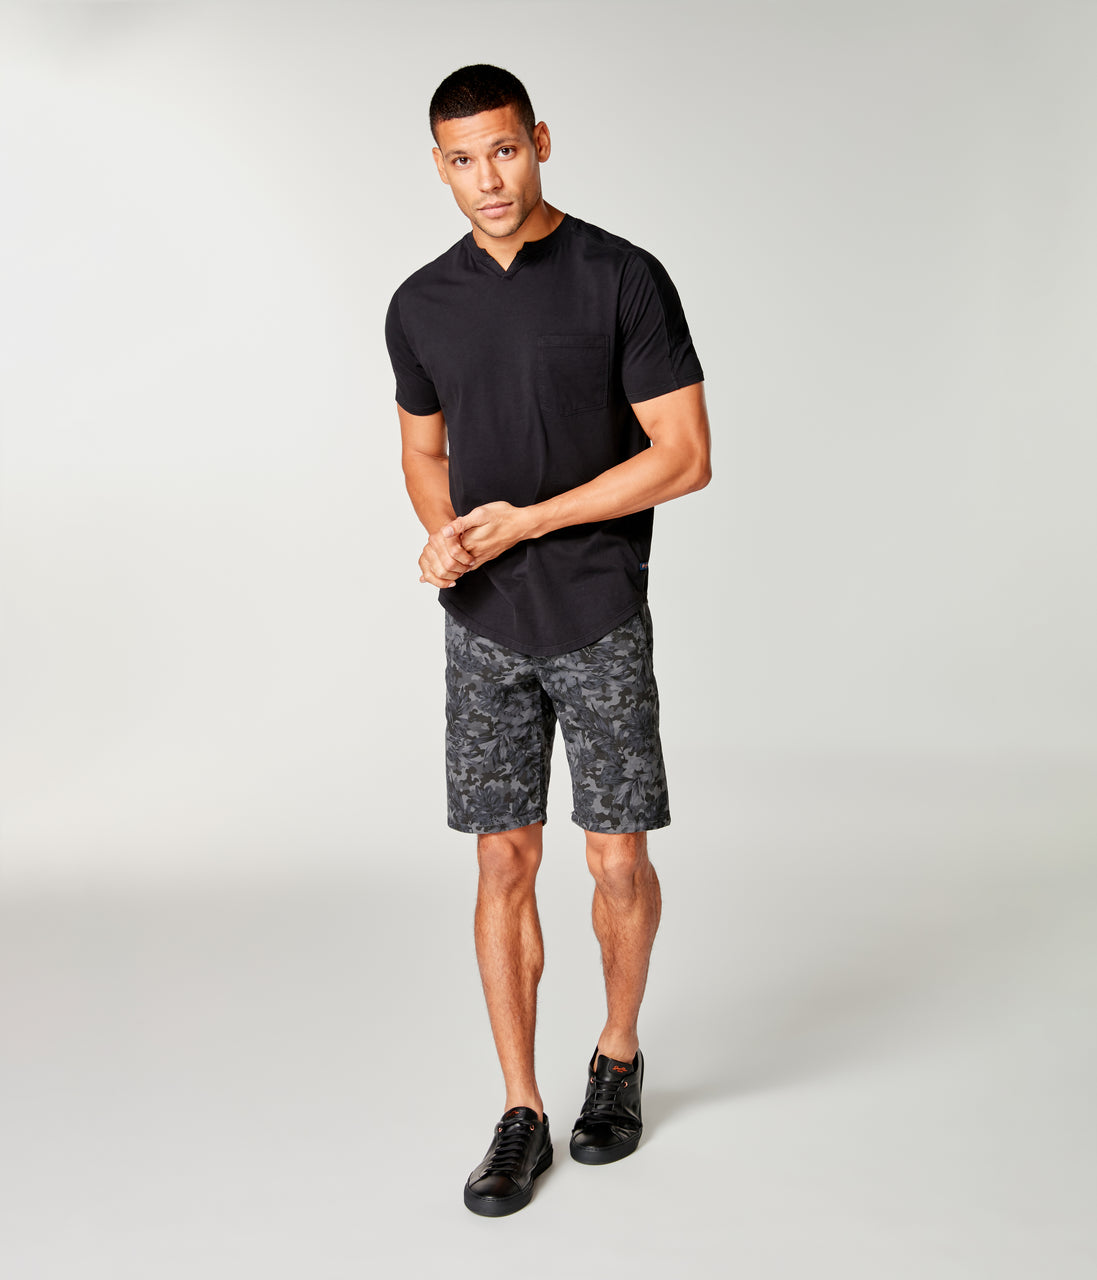 Monaco Stretch Twill Camo Wrap Short - Magnet - Good Man Brand - Monaco Stretch Twill Camo Wrap Short - Magnet